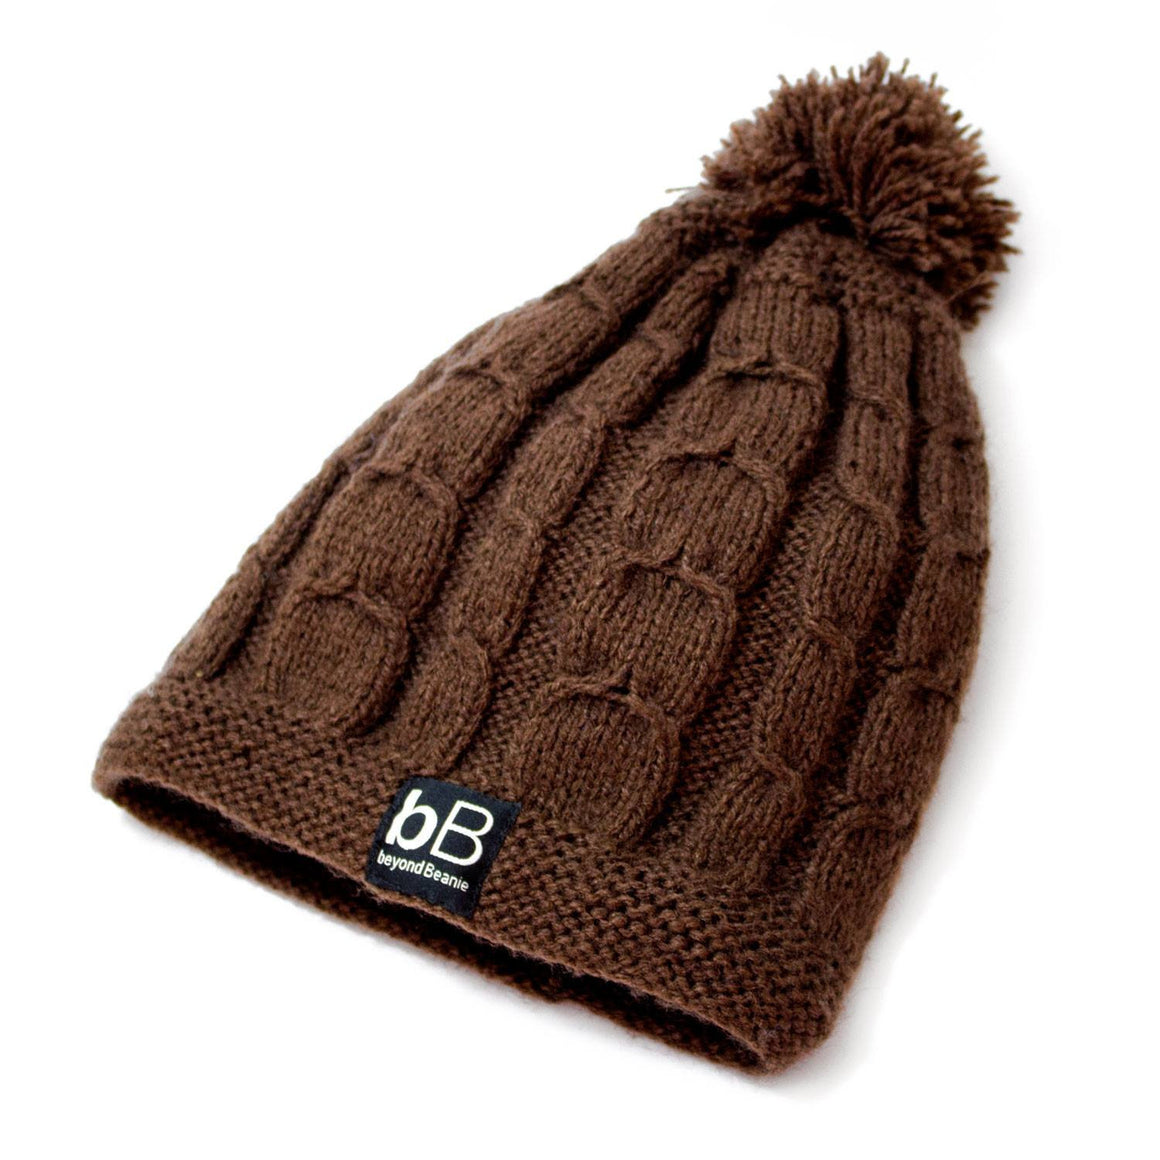 79cc33c9aff Beanies by bB beyond Beanie helping Bolivia. Tagged